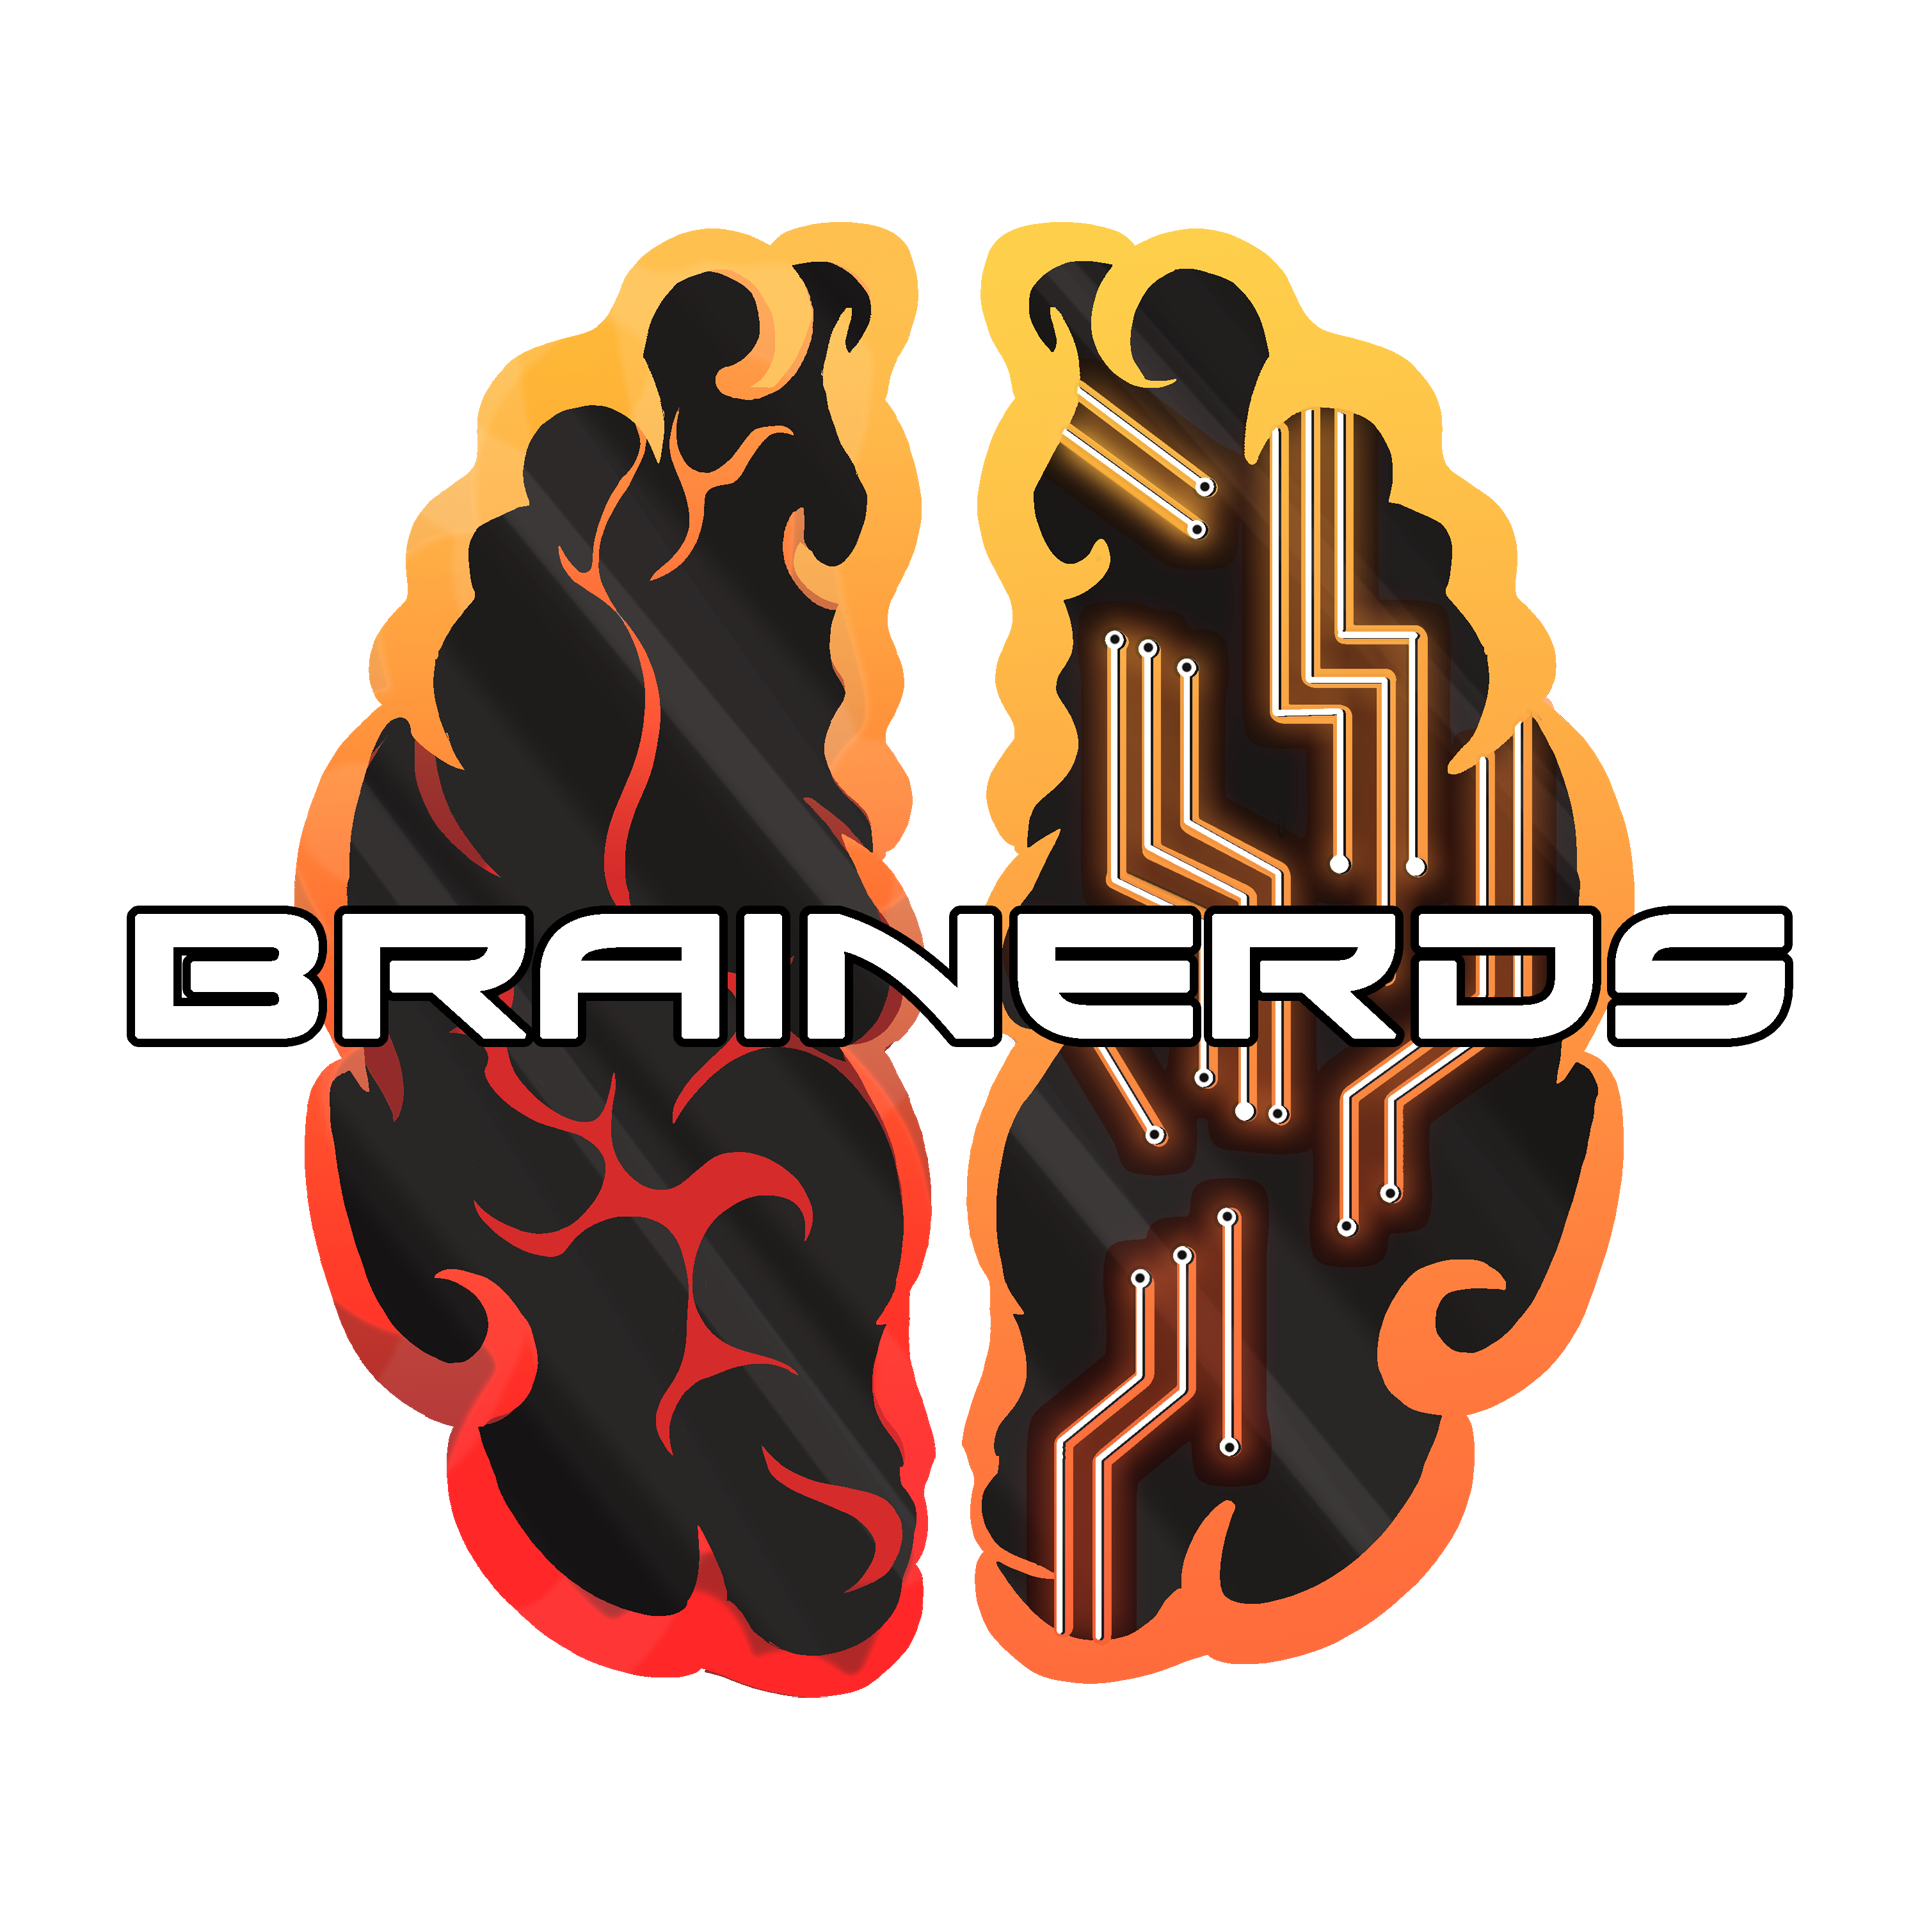 Association - Brainerds Studio